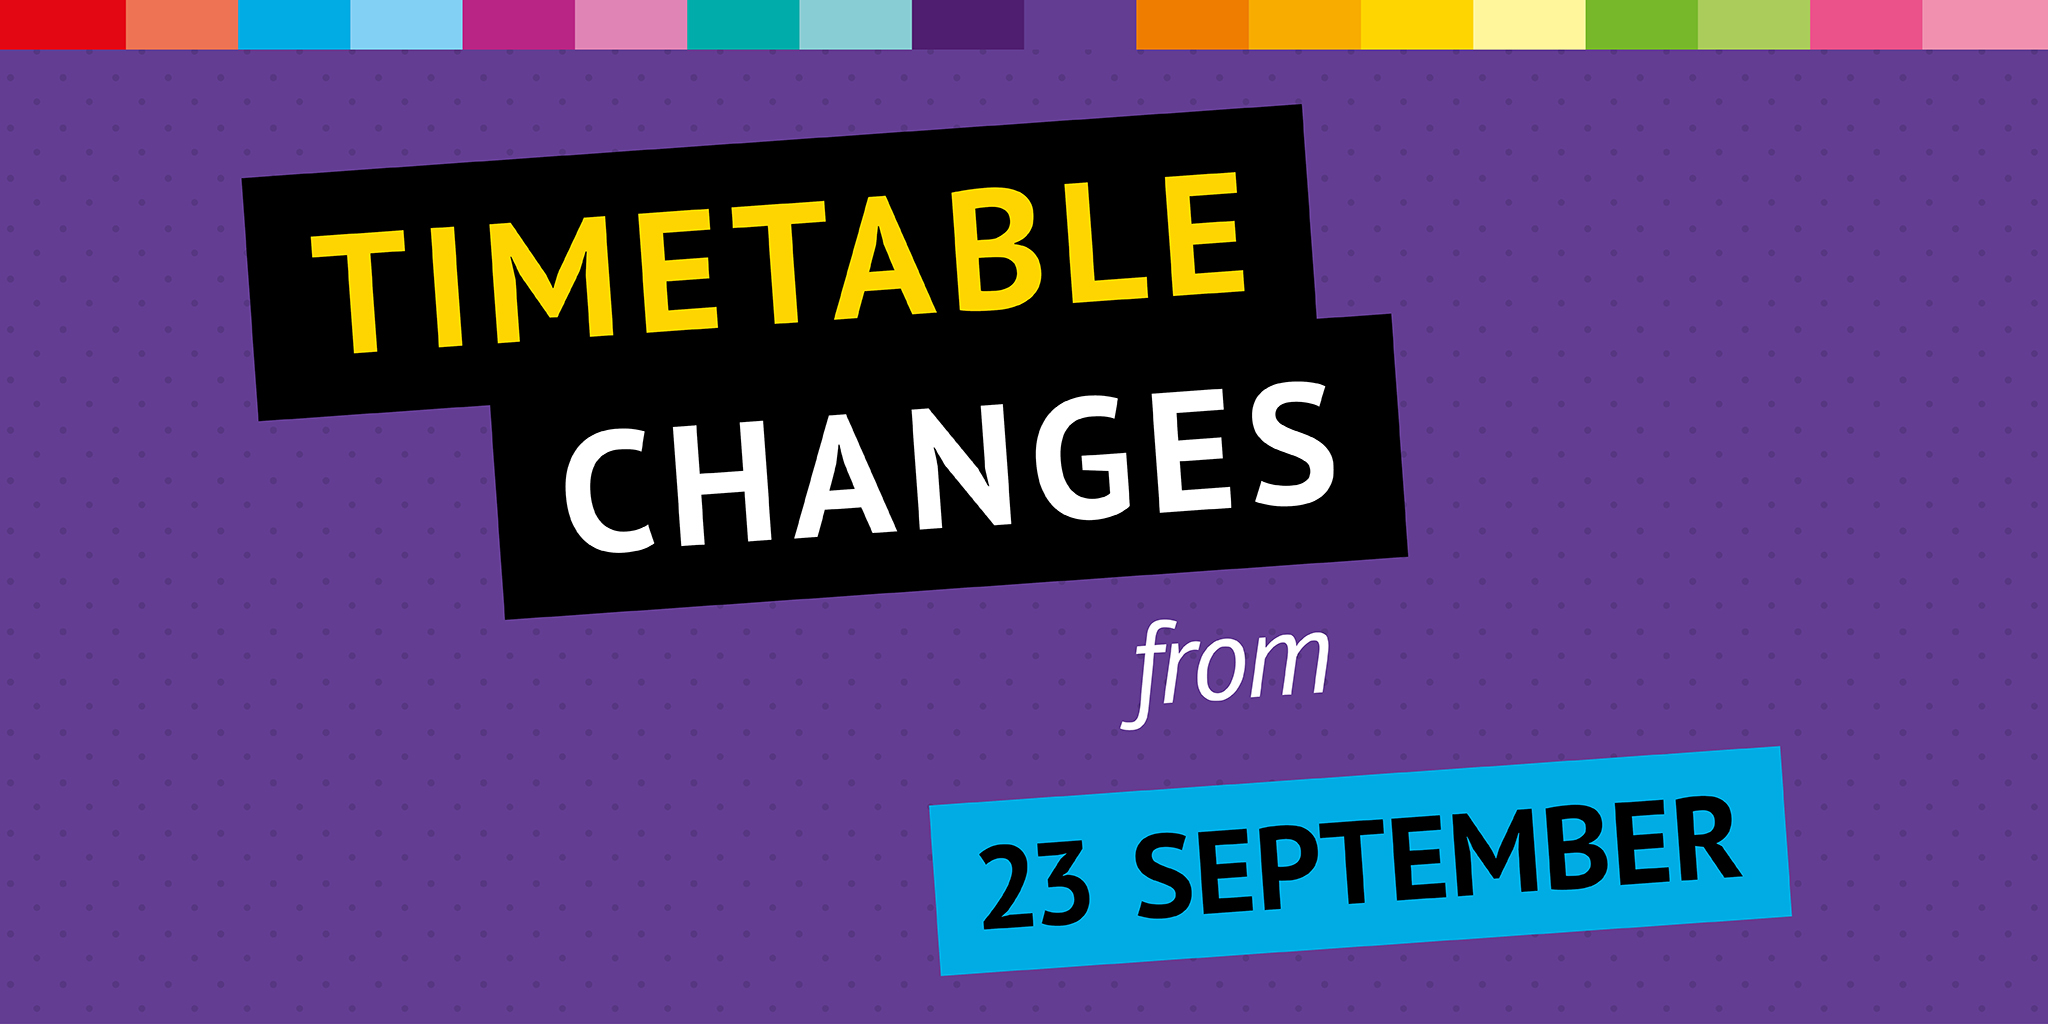 Image with text reading 'Timetable changes from 23rd September'